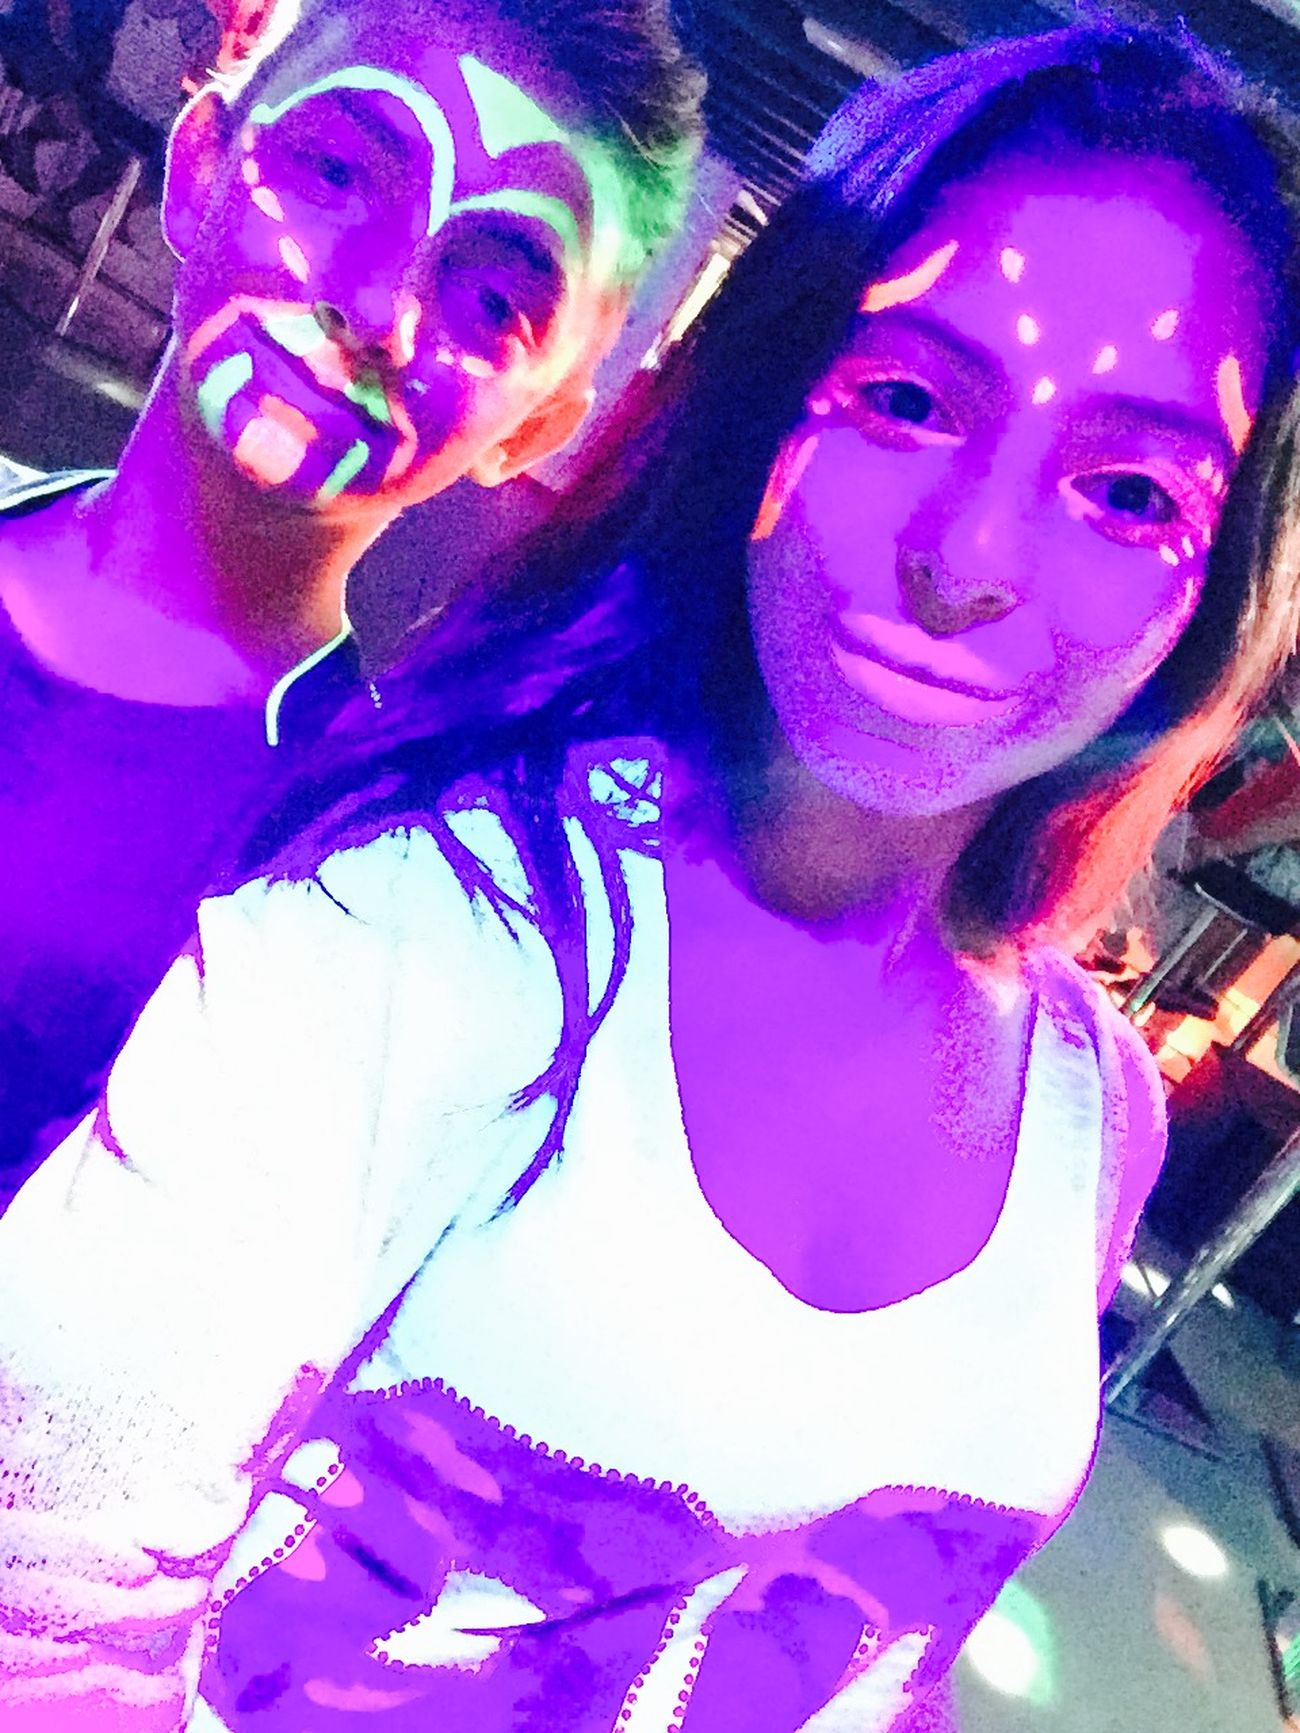 Fluo  Party Neon Dance Fete Love Cool Fashionista Night Lights Music